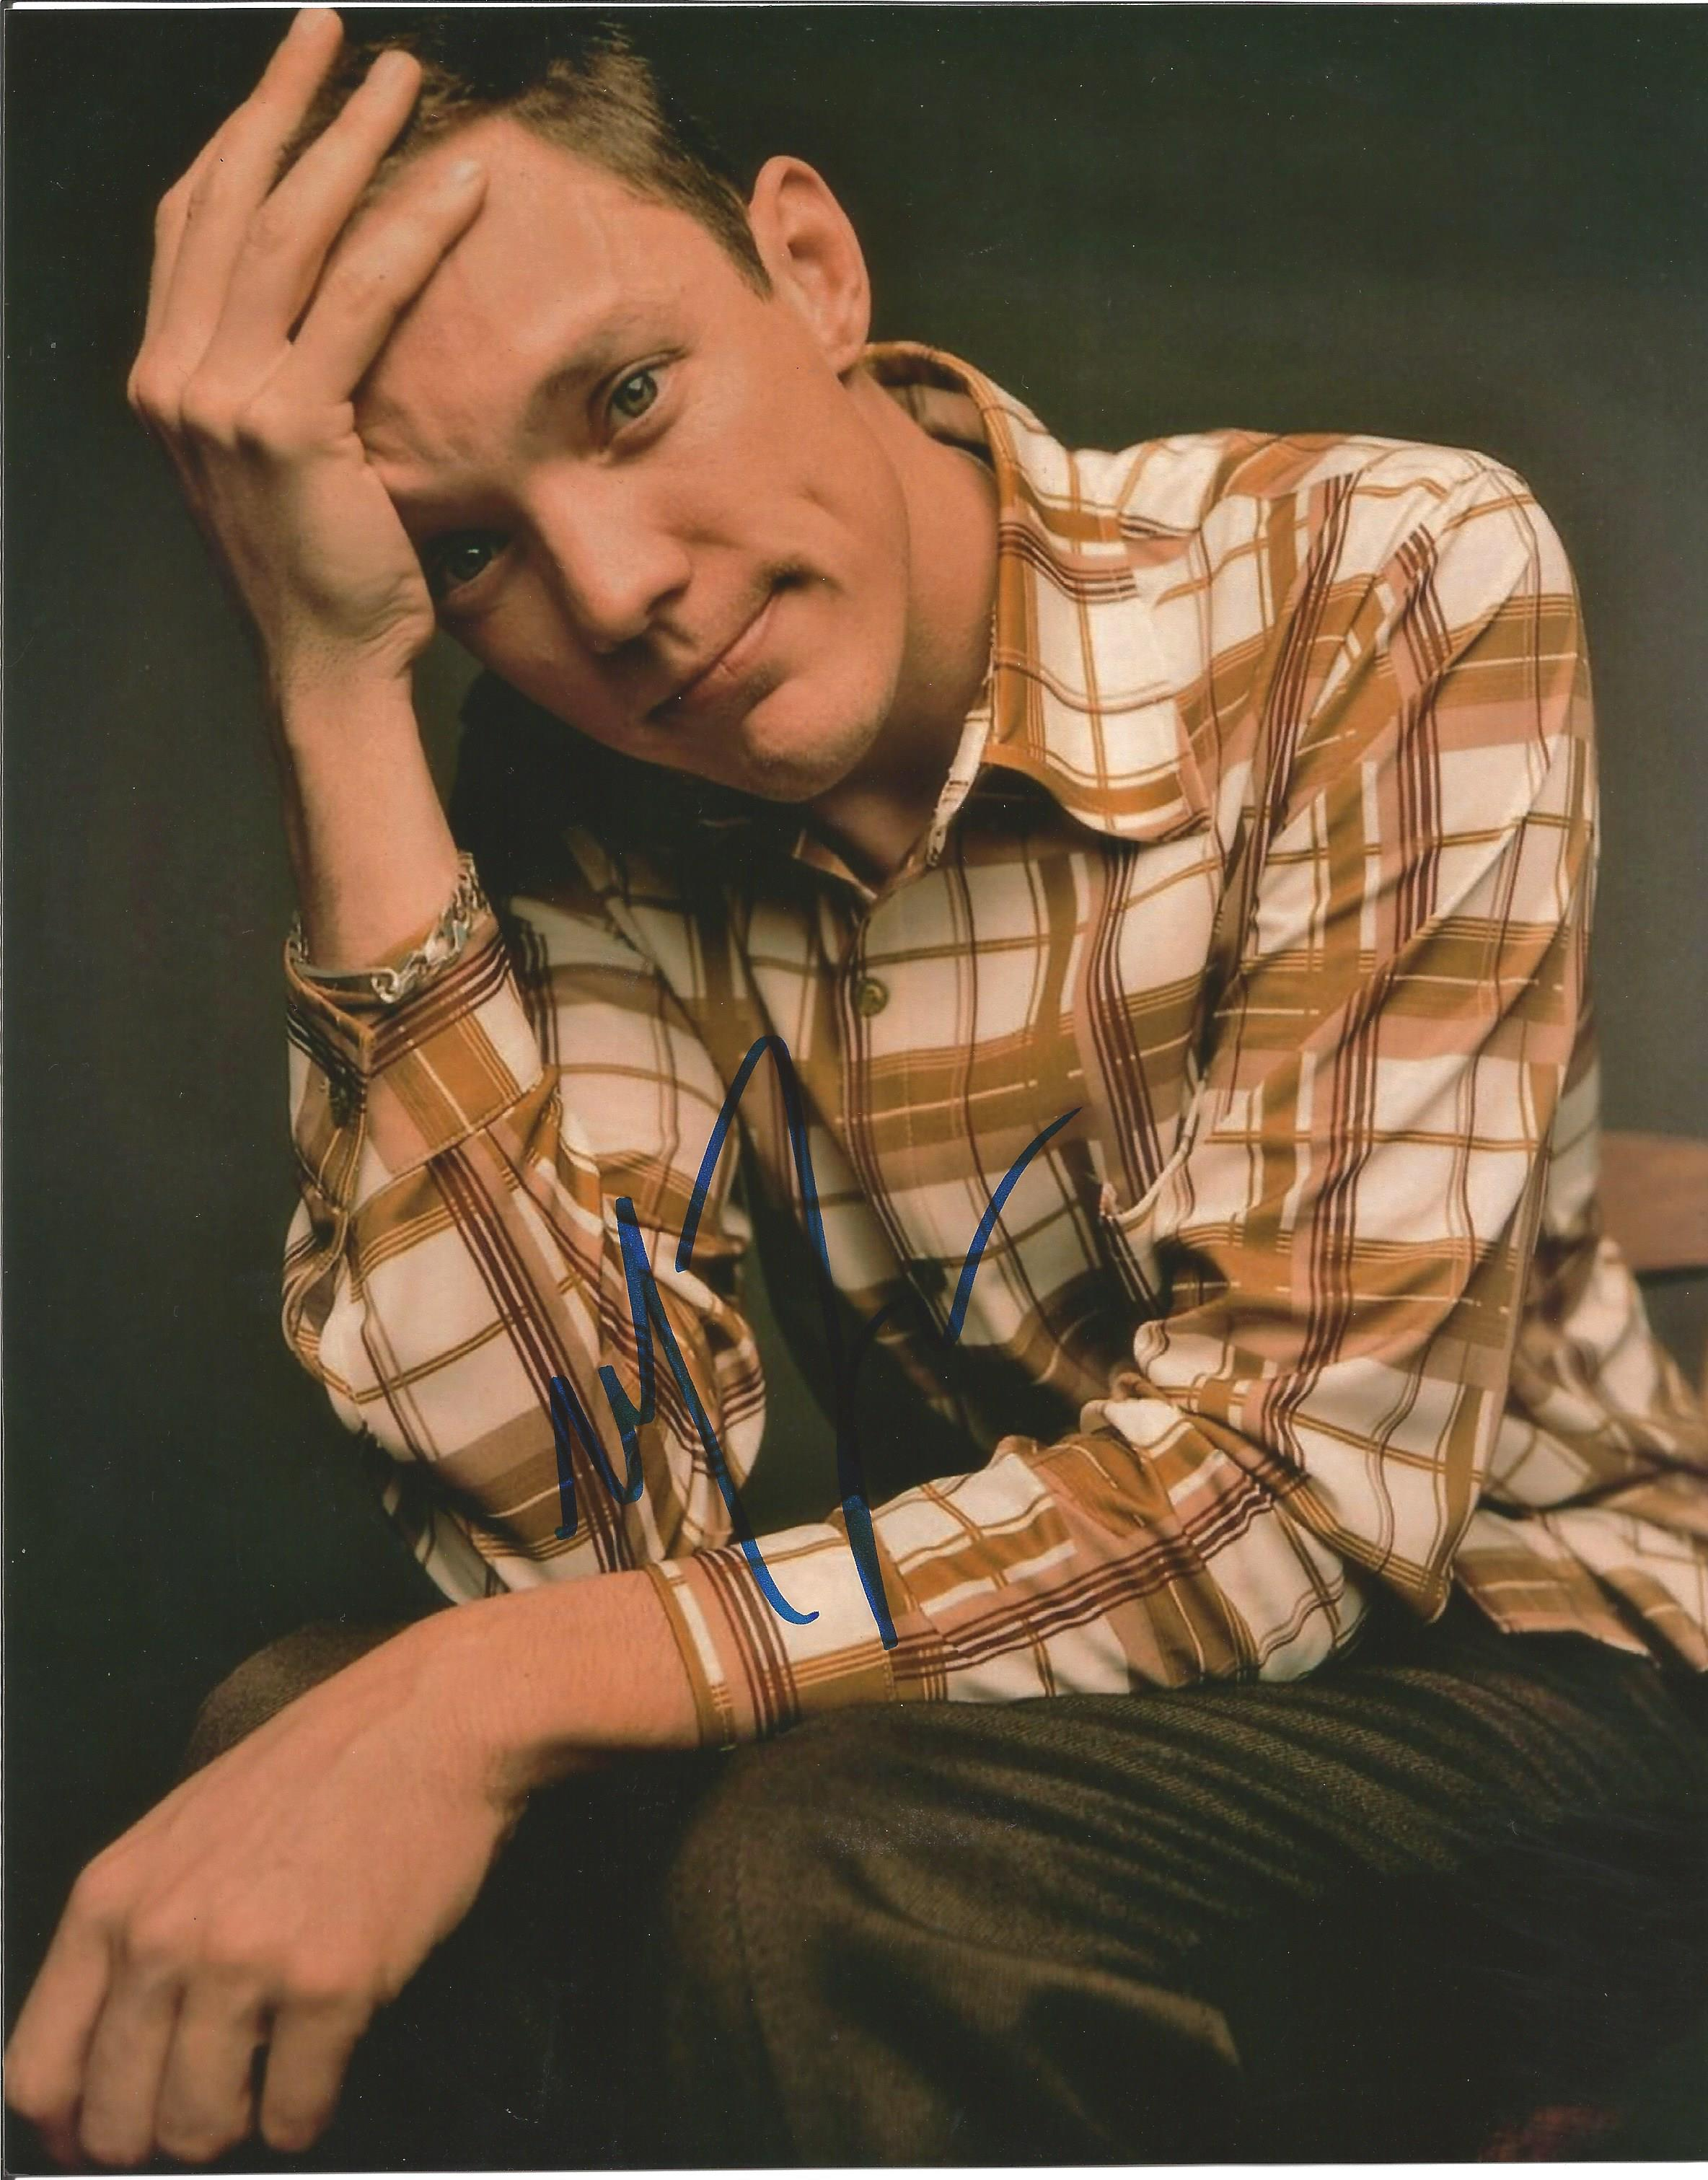 Lot 56 - Matthew Lillard signed 10 x 8 colour Photoshoot Portrait Photo, from in person collection